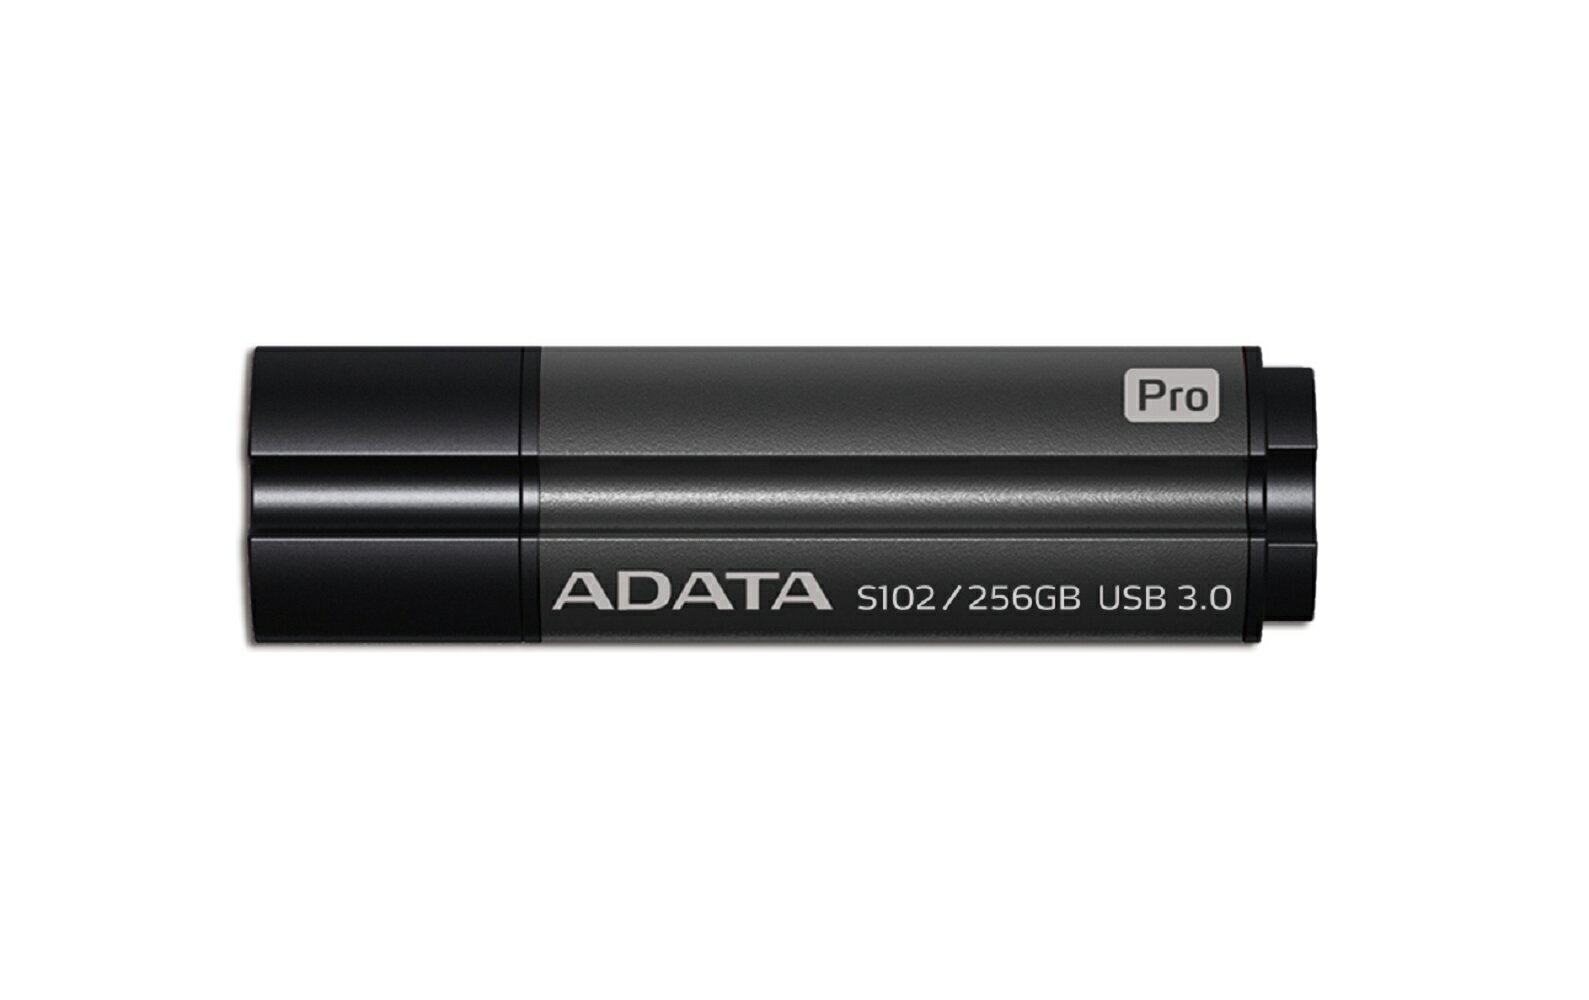 ADATA S102 Pro Advanced USB 3.0 Flash Drive 256GB Titanium Gray (AS102P-256G-RGY) 0